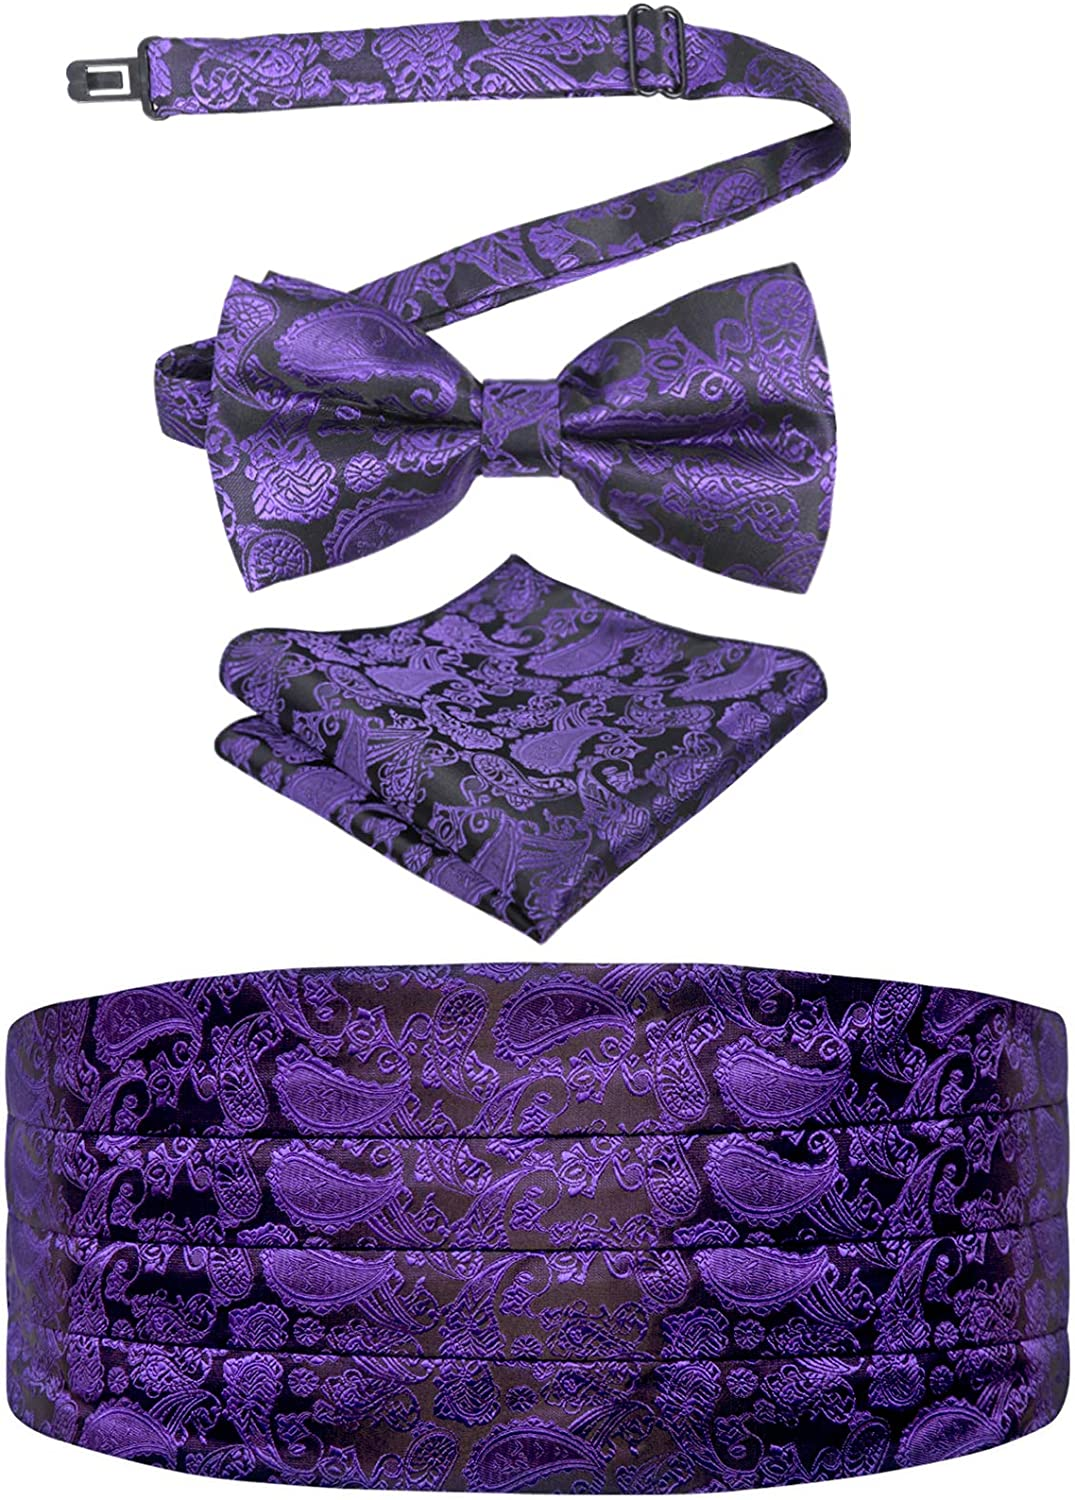 Alizeal Mens Paisley/Solid Pre-tied Party Adjustable Bow Tie, Cummerbund and Pocket Square Gift Set